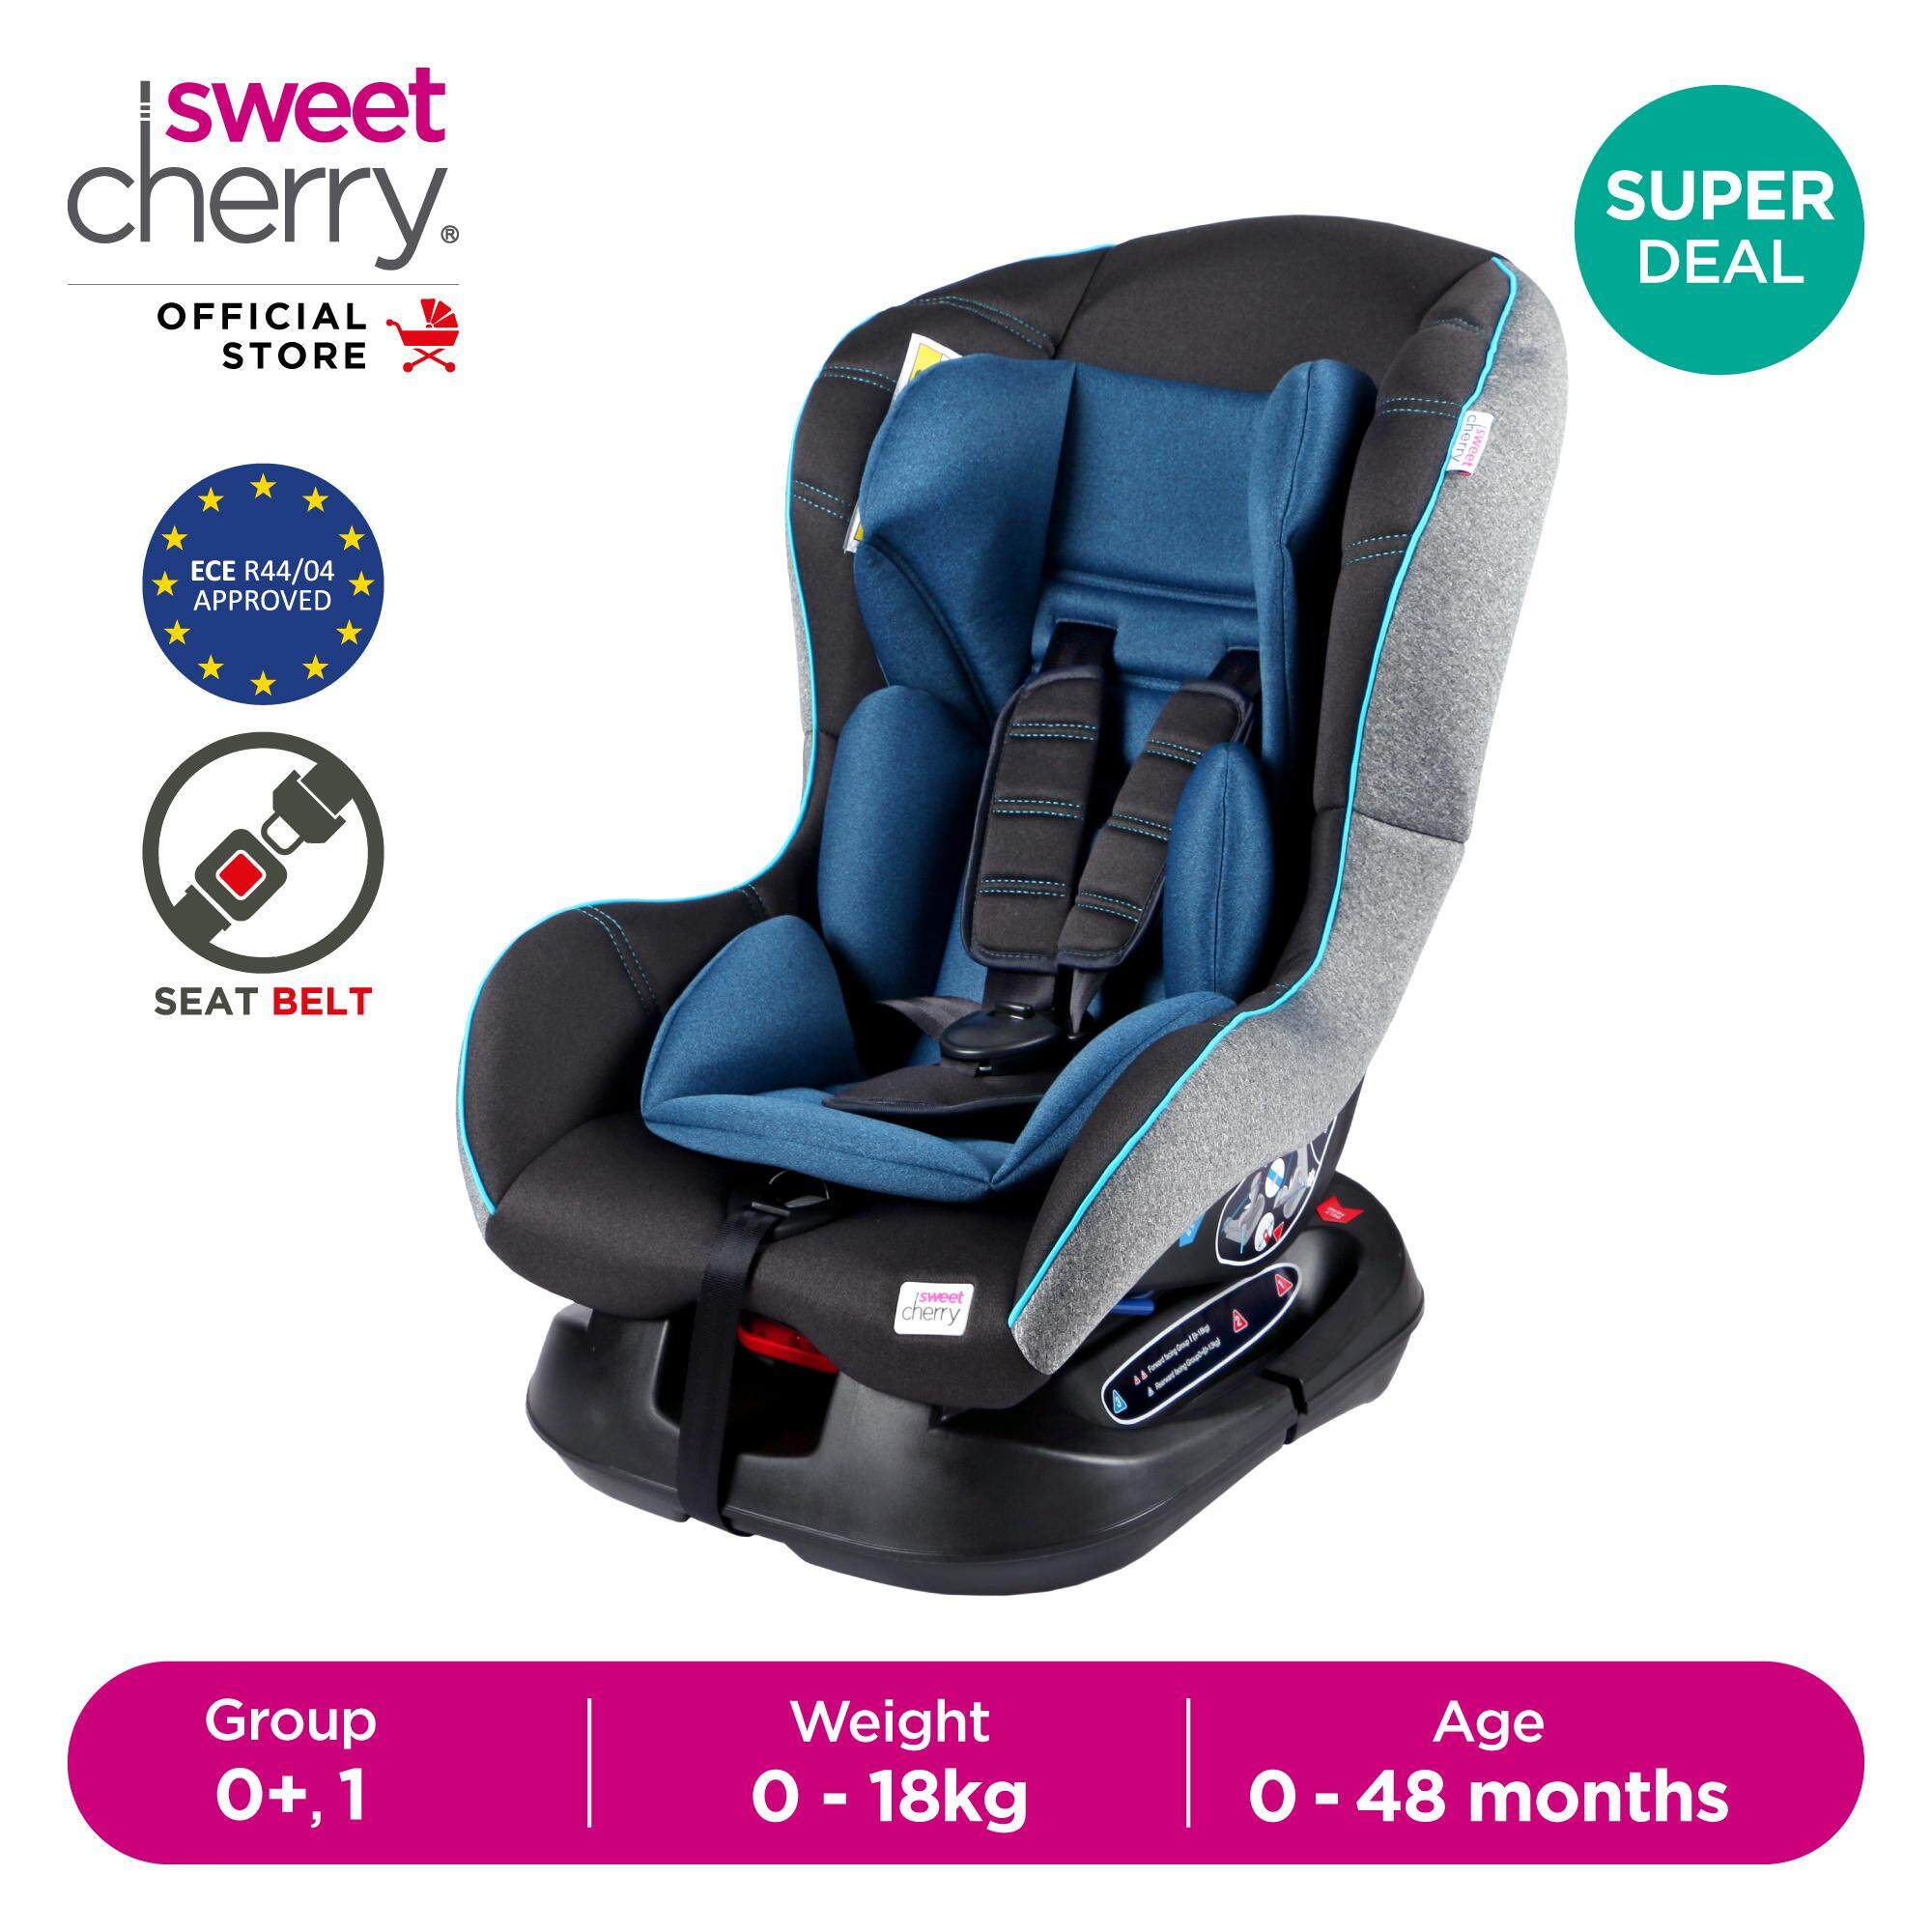 d8252aa4 Sweet Cherry LB303 Dean Carseat